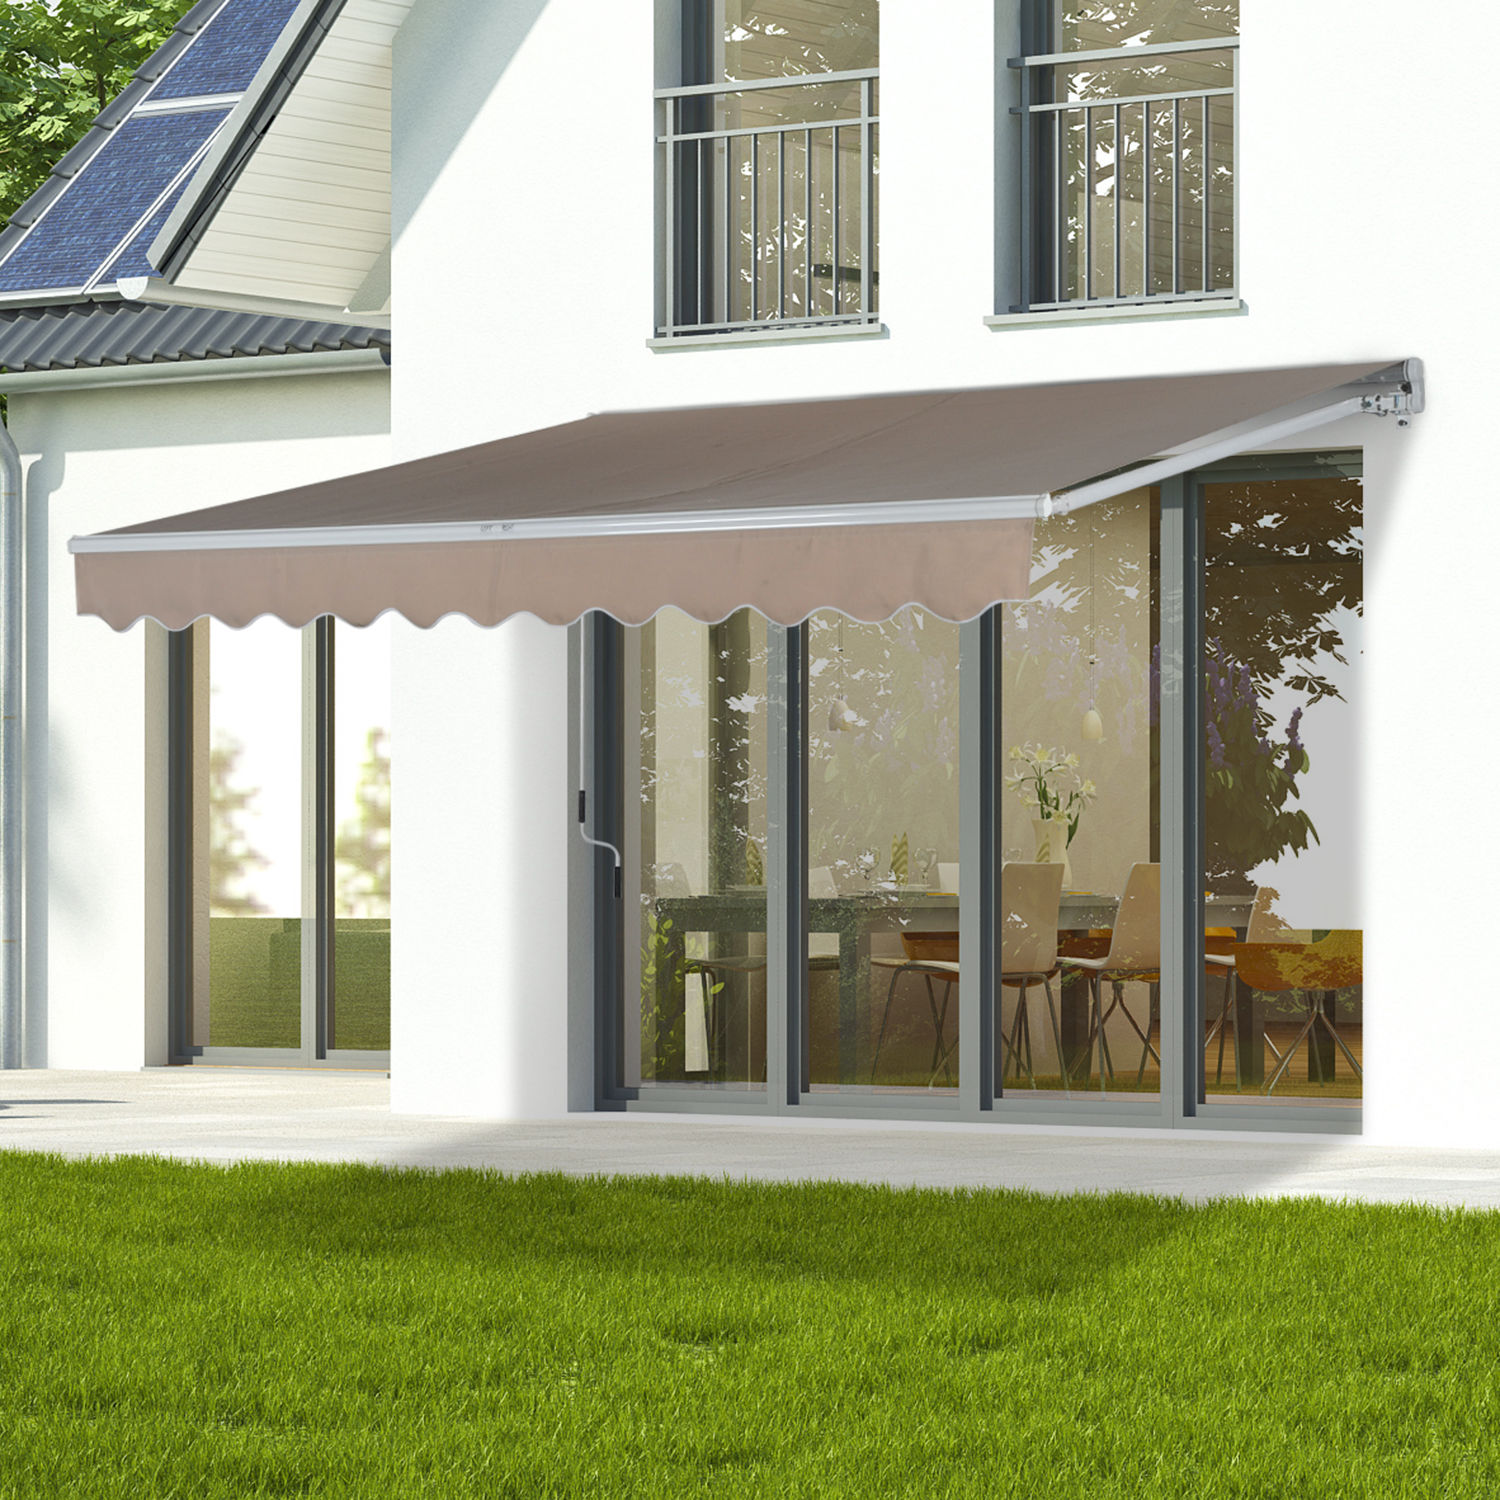 Patio Awning Canopy Retractable Deck Door Outdoor Sun ...